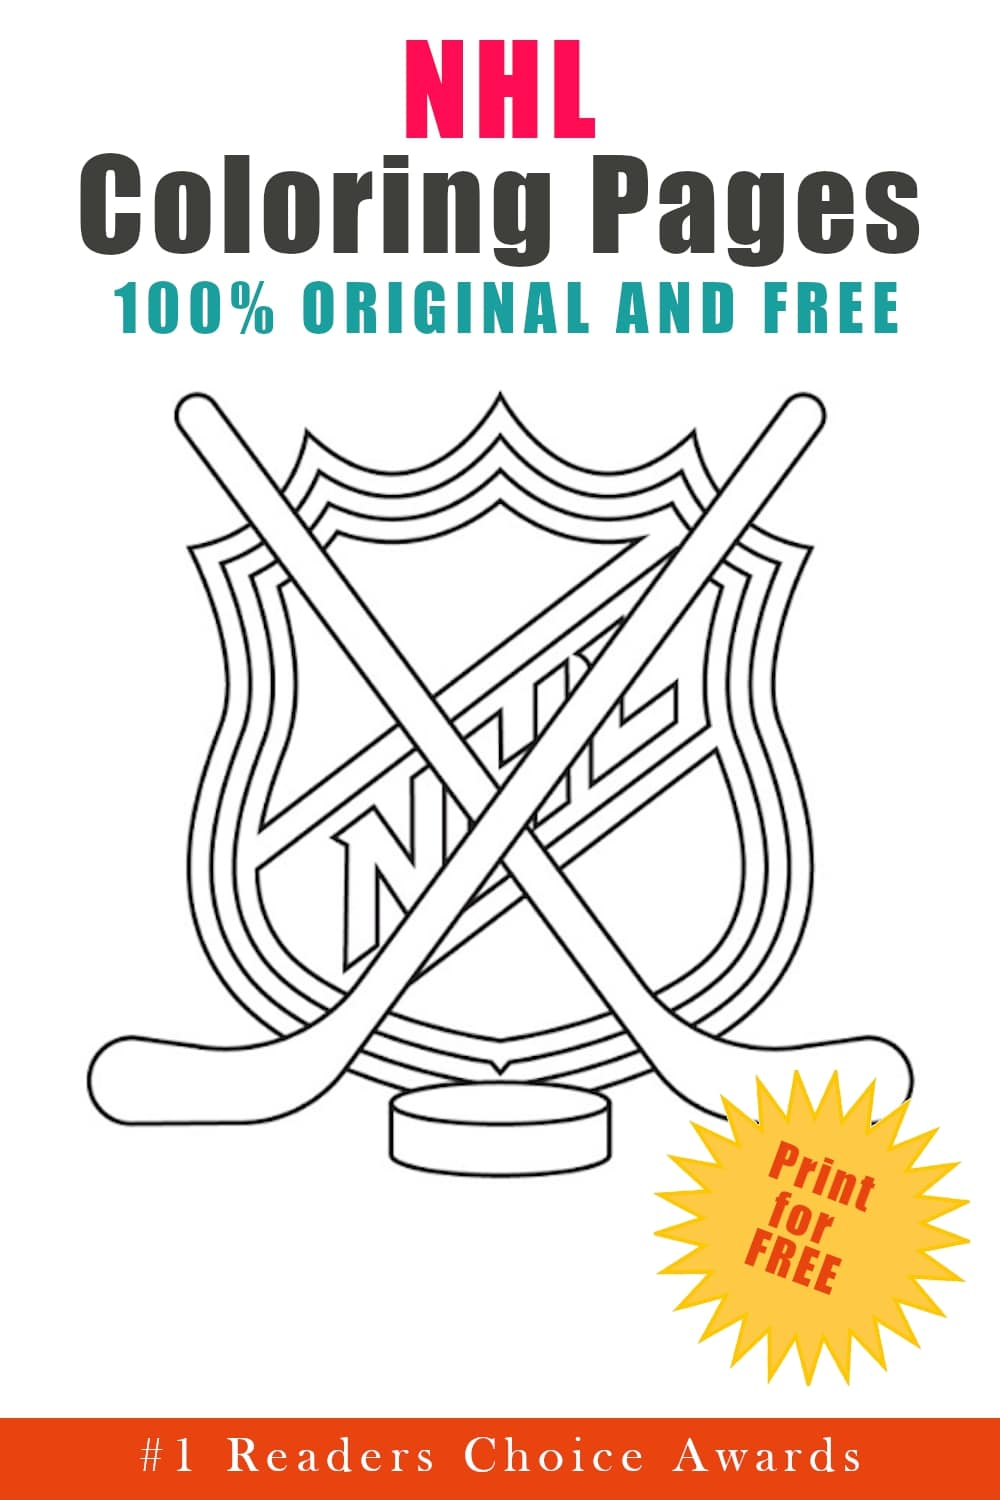 original and free NHL coloring pages